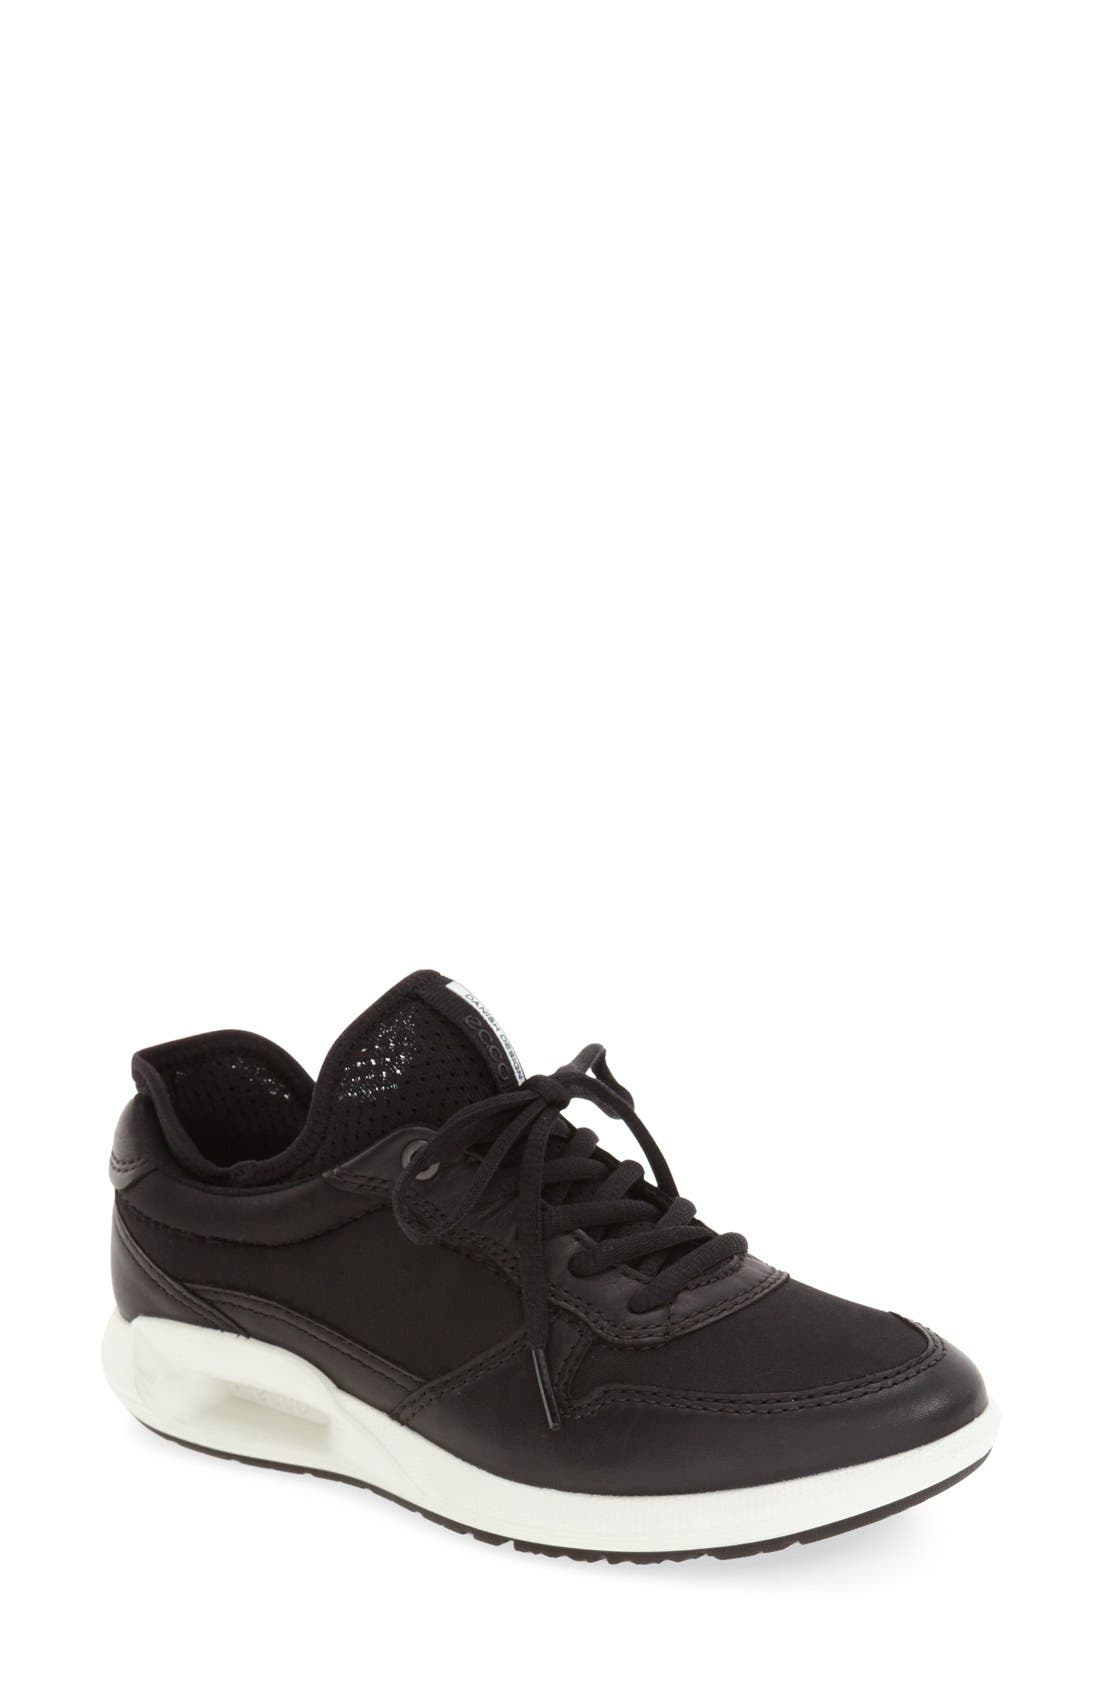 'CS16' Sneaker,                         Main,                         color, Black Leather